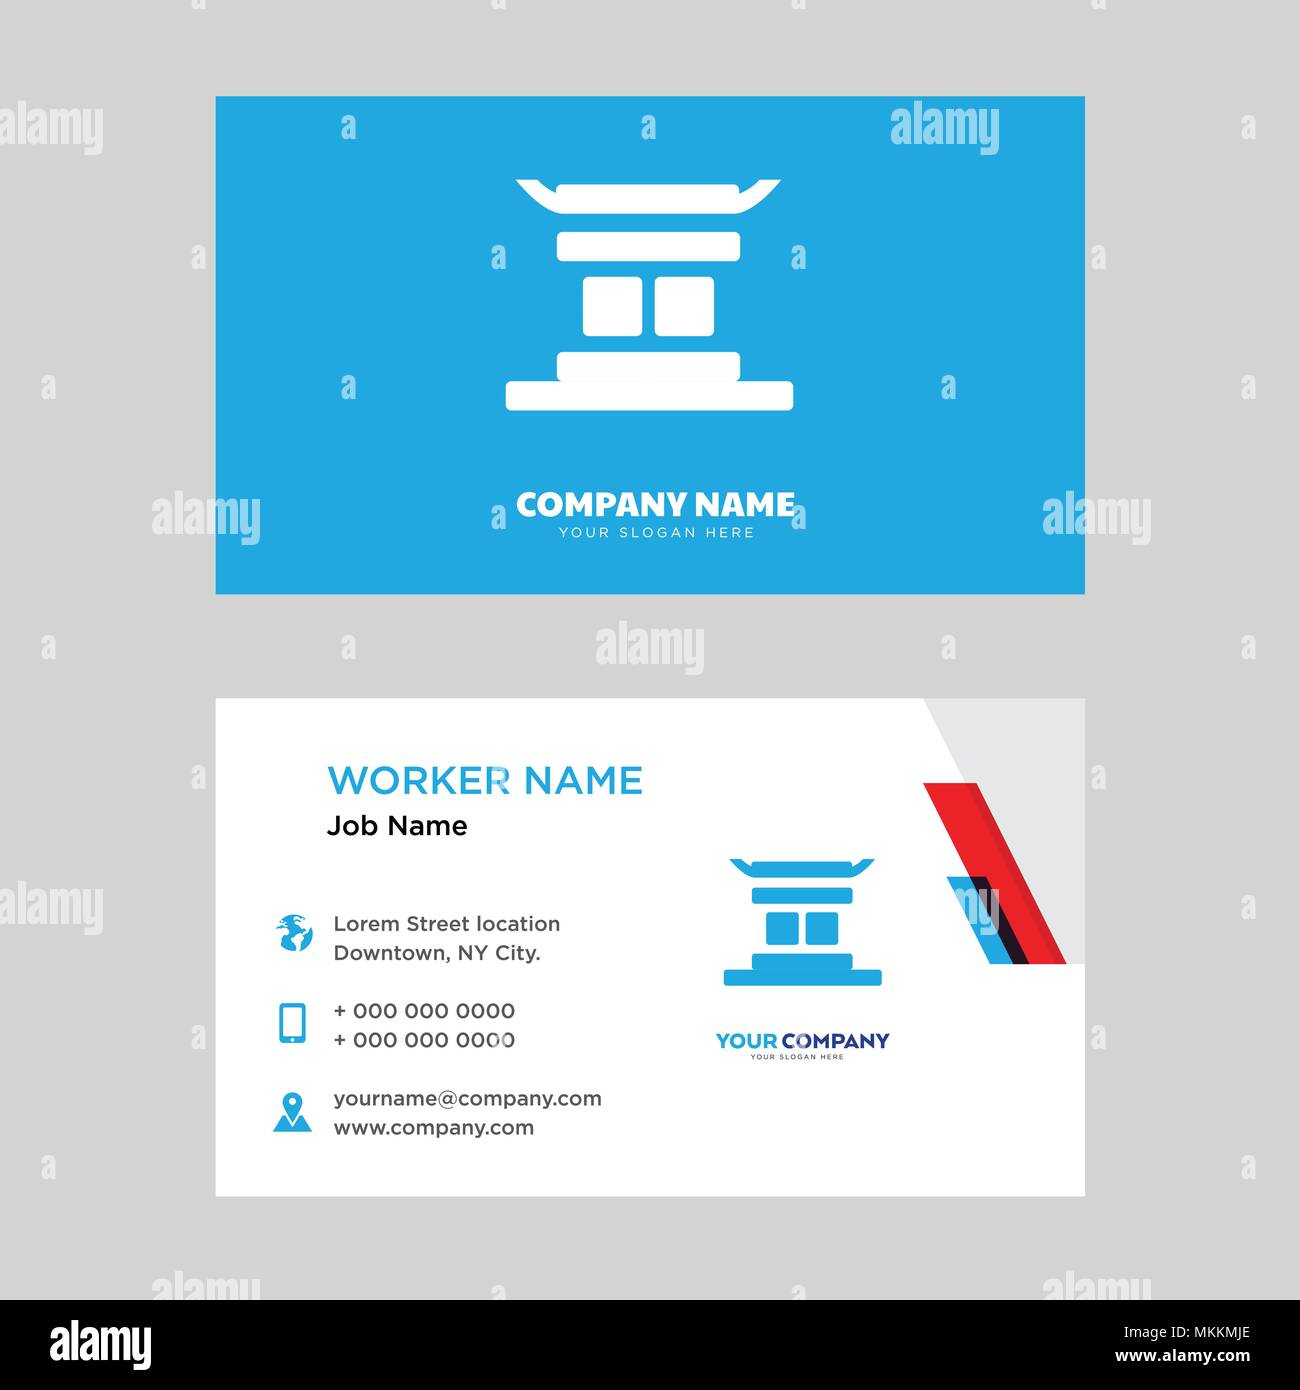 Chinese temple business card design template visiting for your chinese temple business card design template visiting for your company modern horizontal identity card vector colourmoves